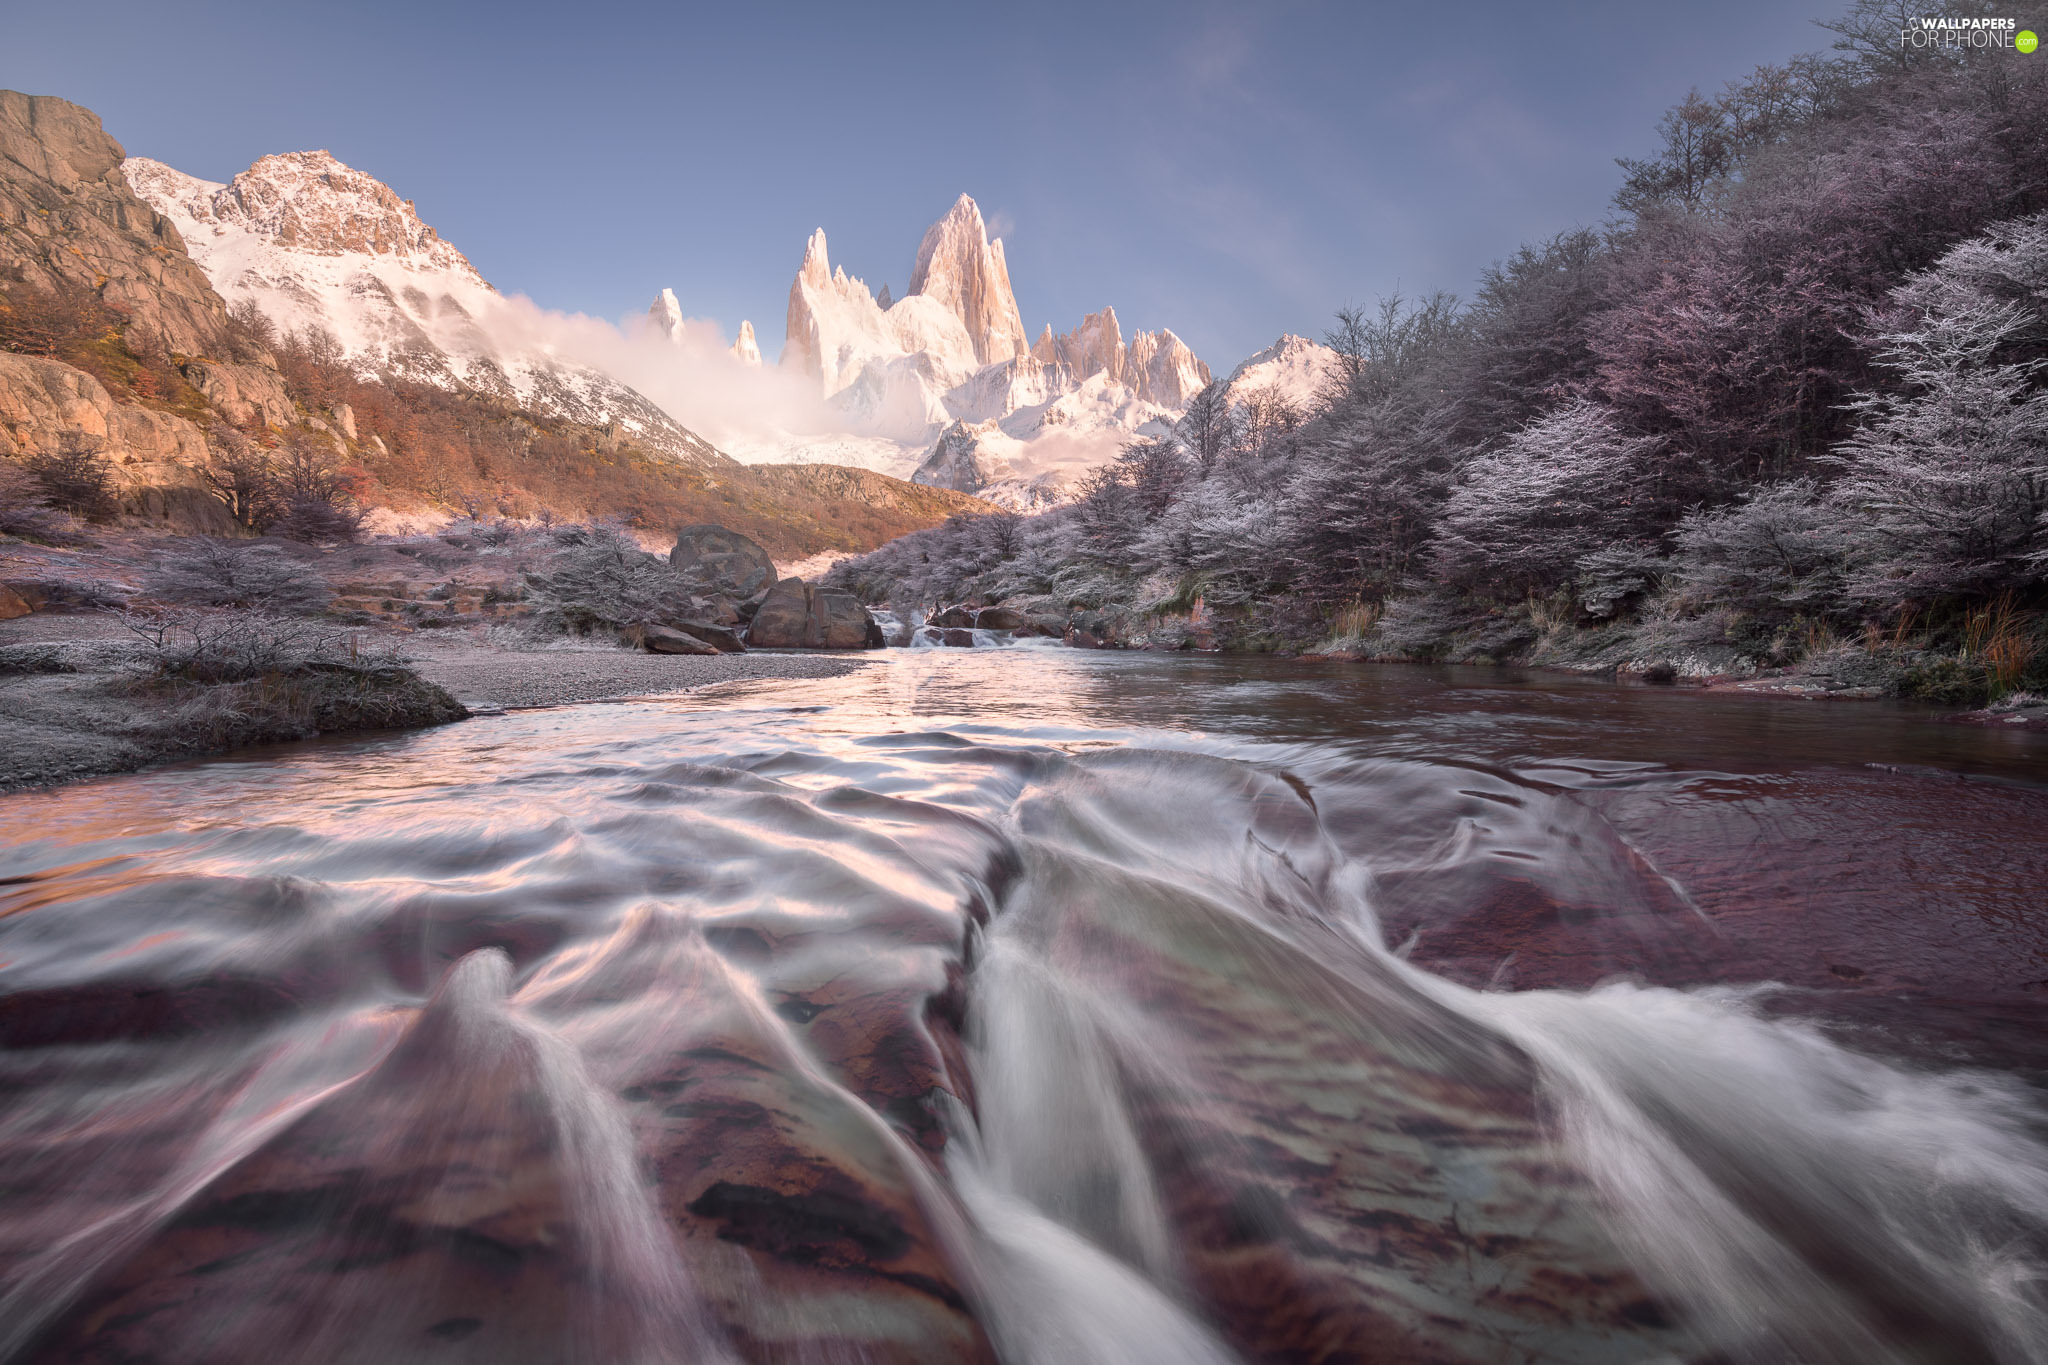 Fitz Roy Mountain, River, trees, Patagonia, viewes, Mountains, rocks, Argentina, Los Glaciares National Park, Andes Mountains